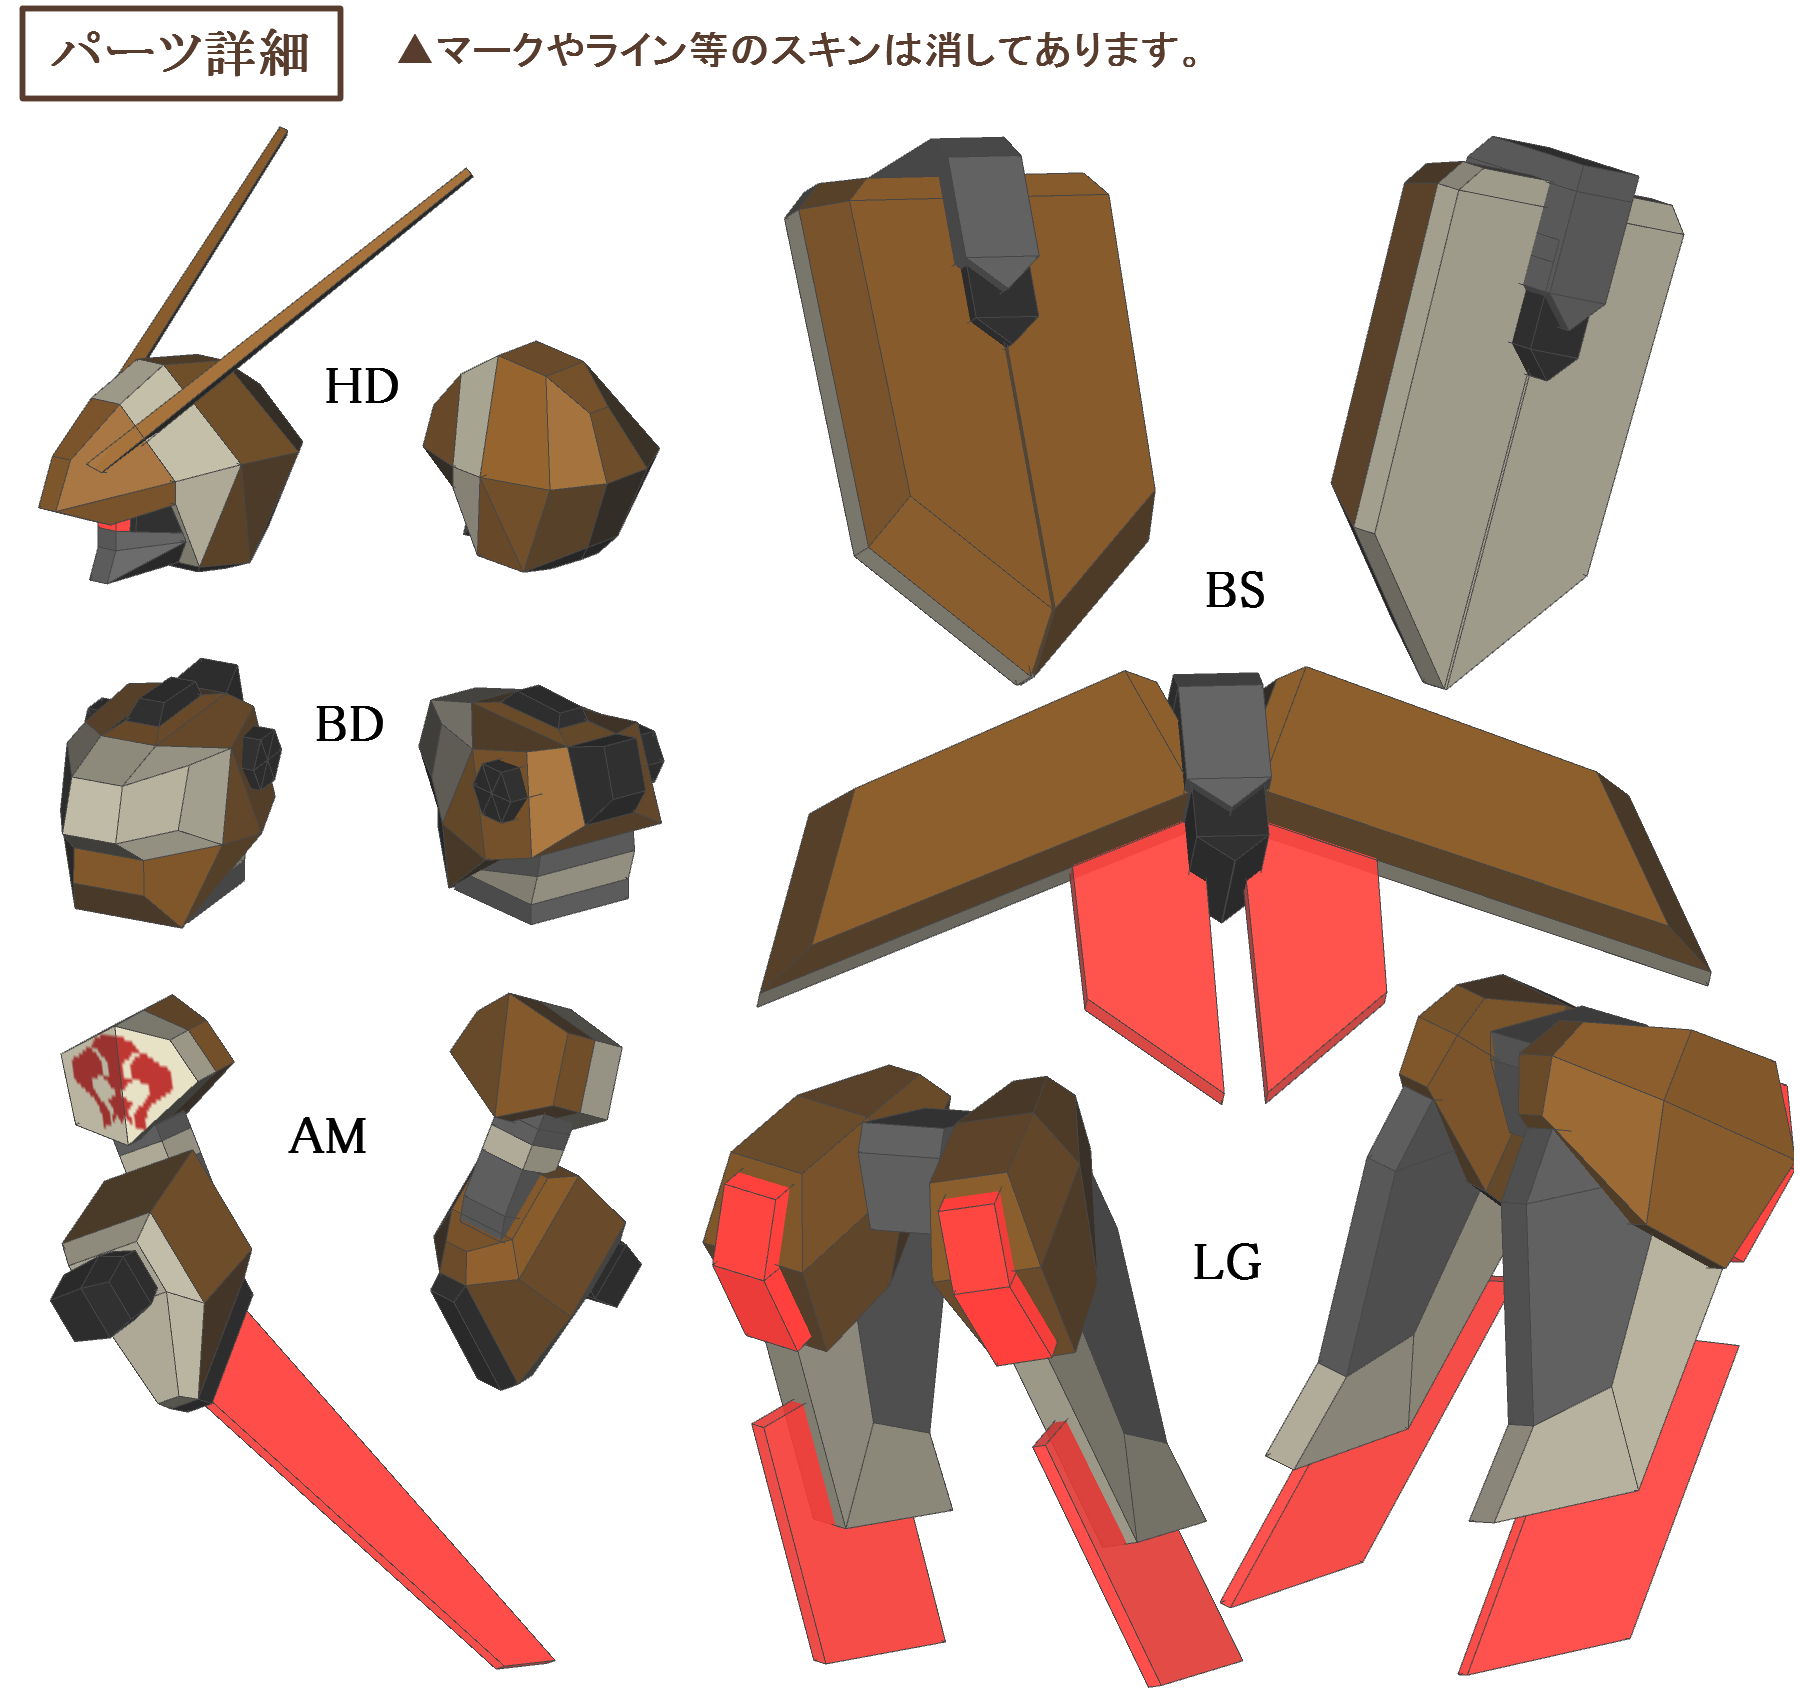 weapon and enemy design contest results Img.php?filename=tc_1339558_2_1384965208